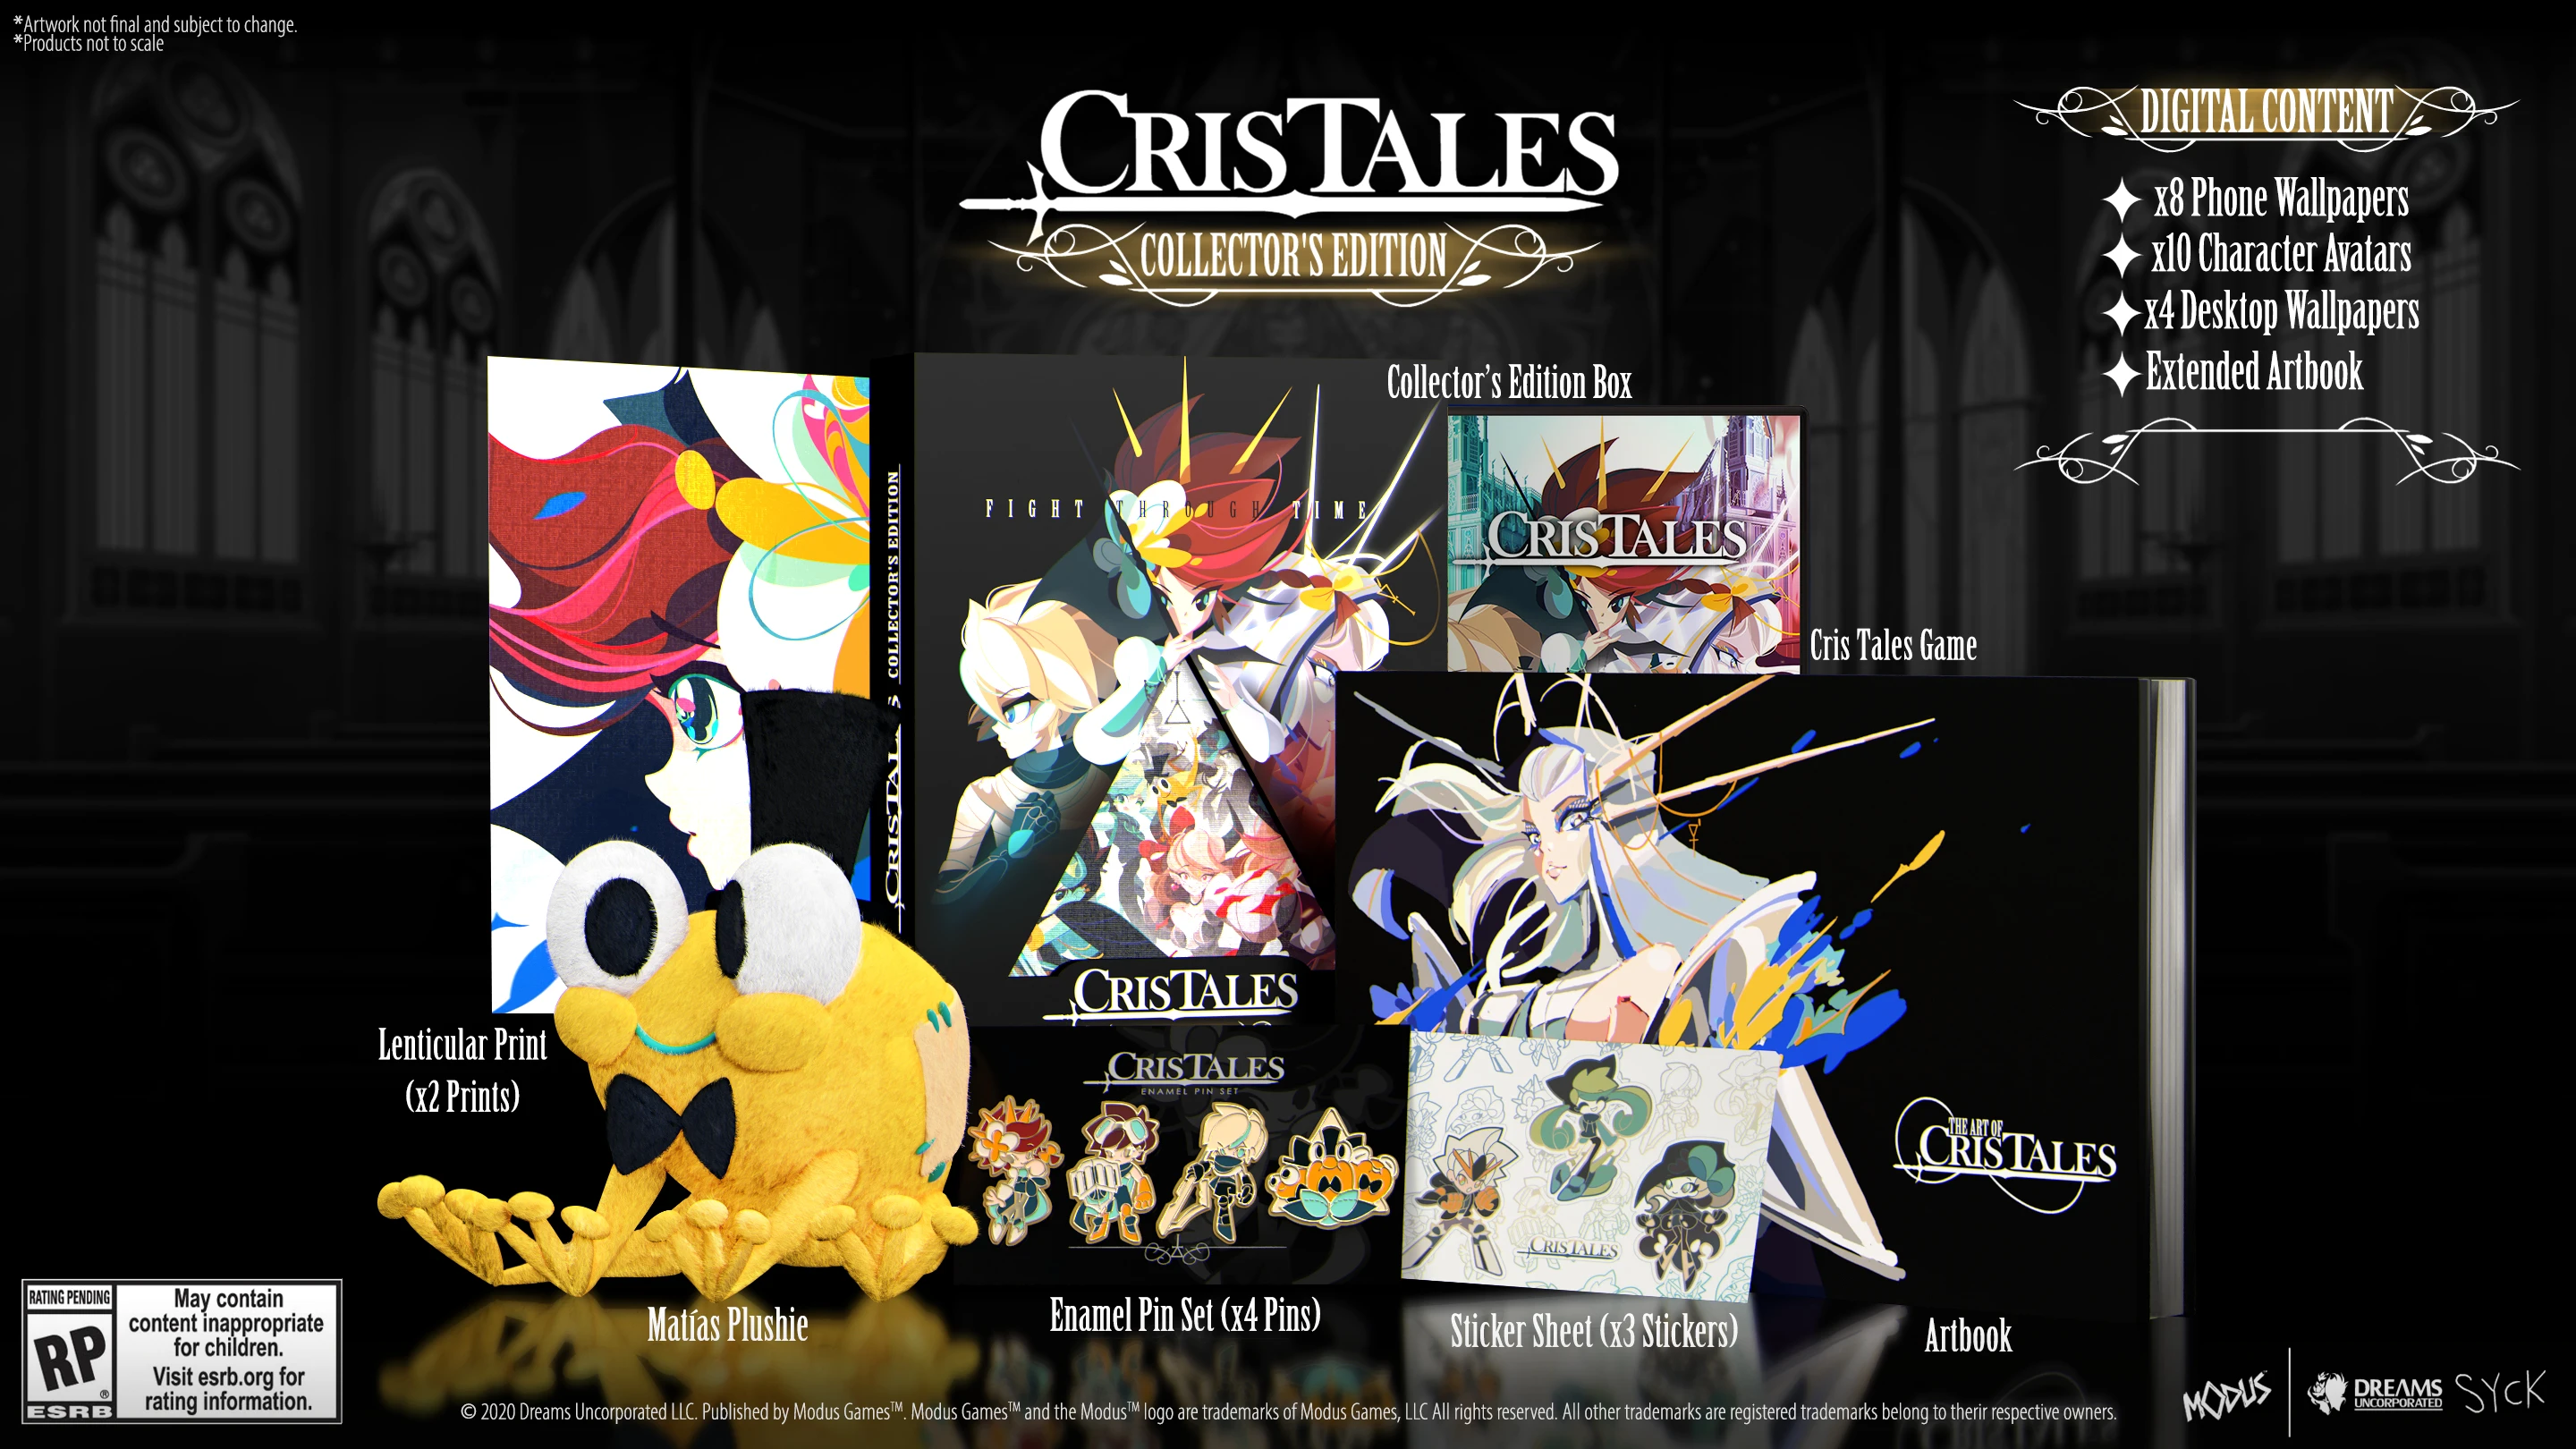 Cris Tales: Édition Collector (Image: Maximum Games Store)